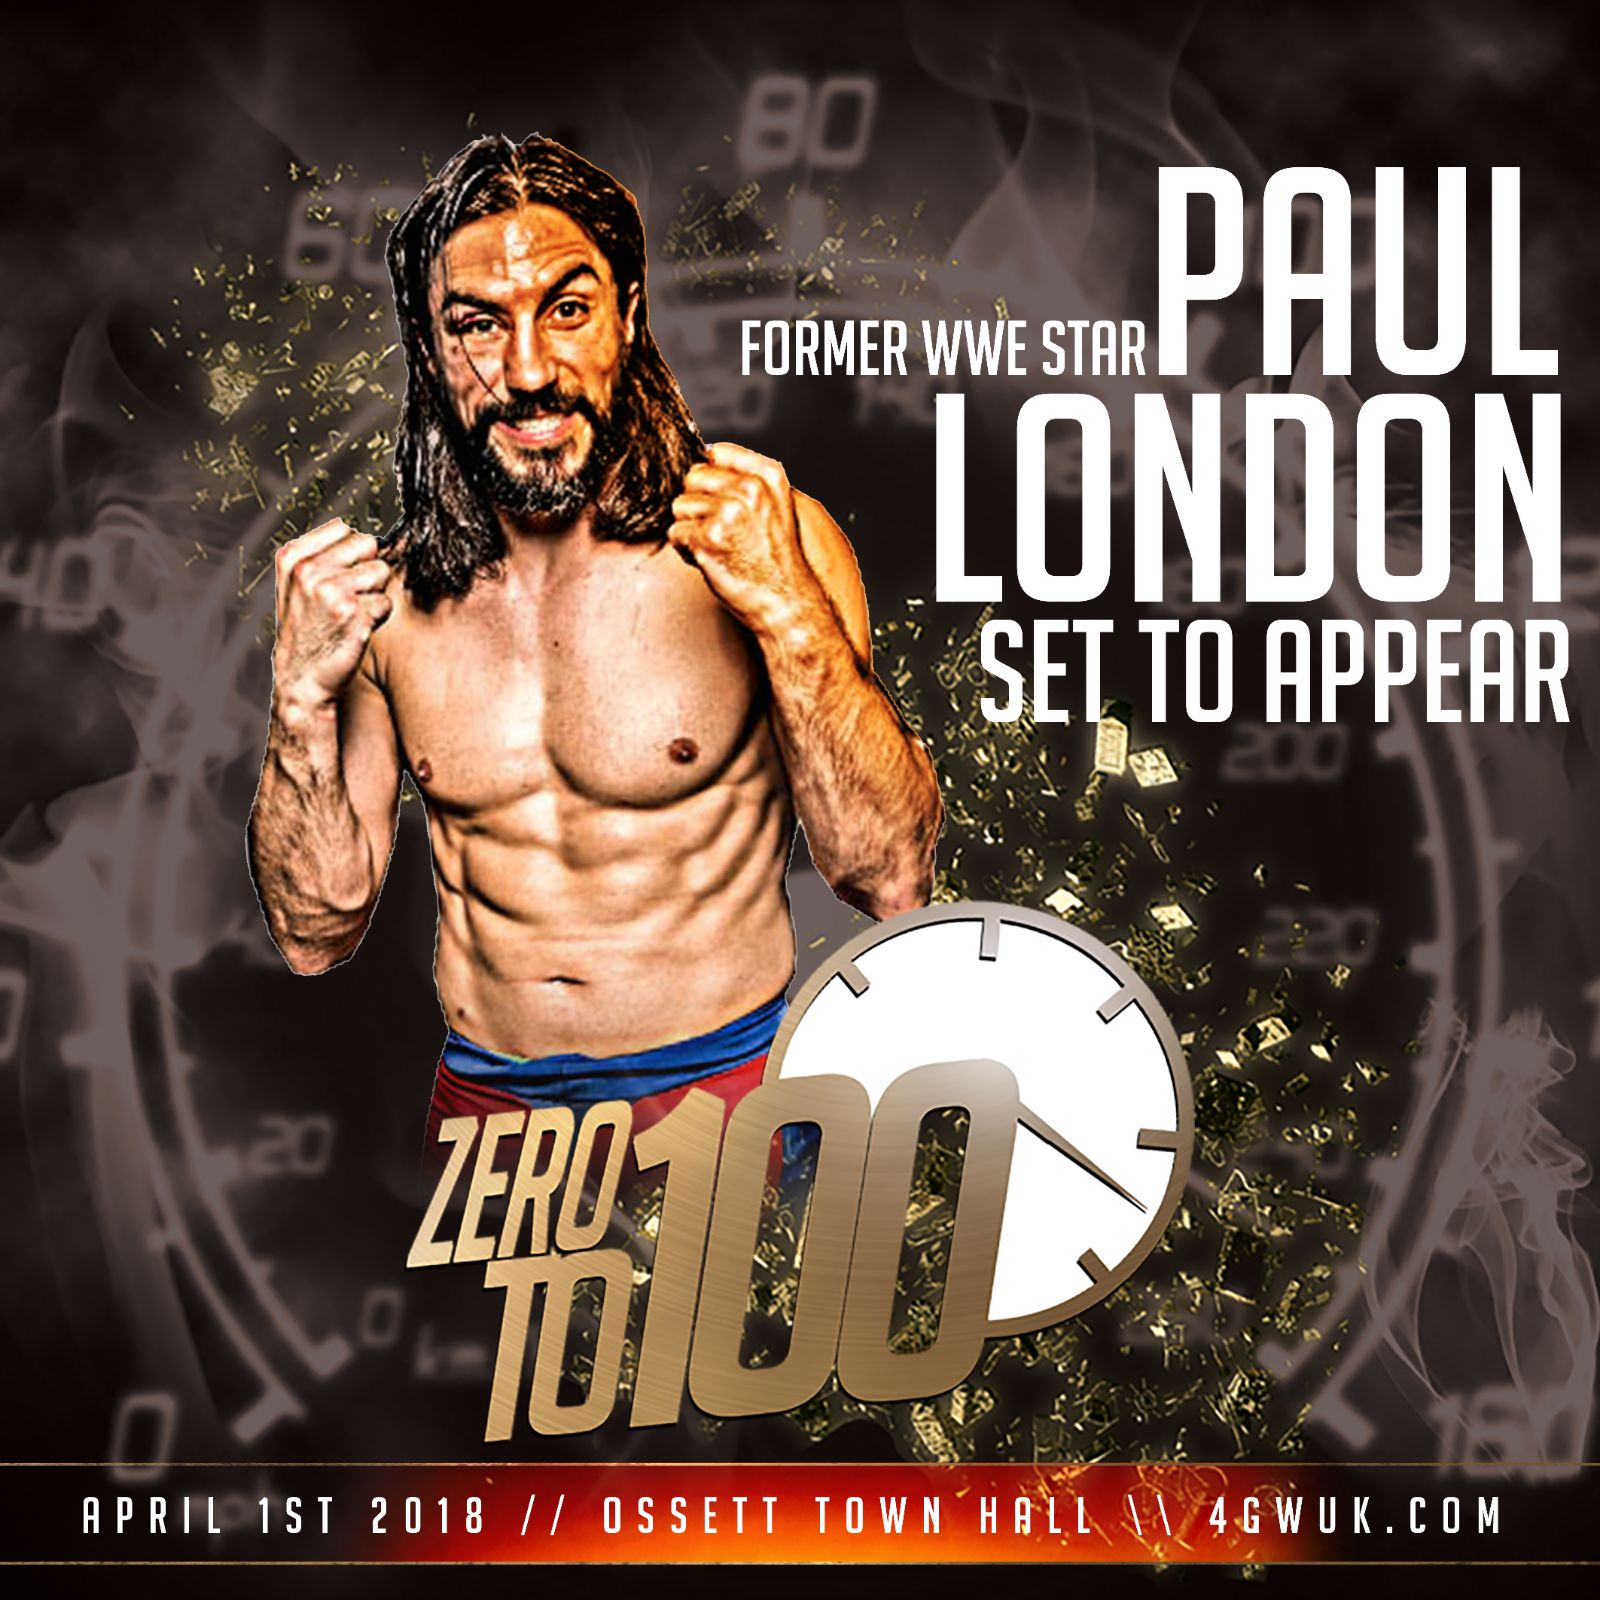 Paul London is Coming - past event video